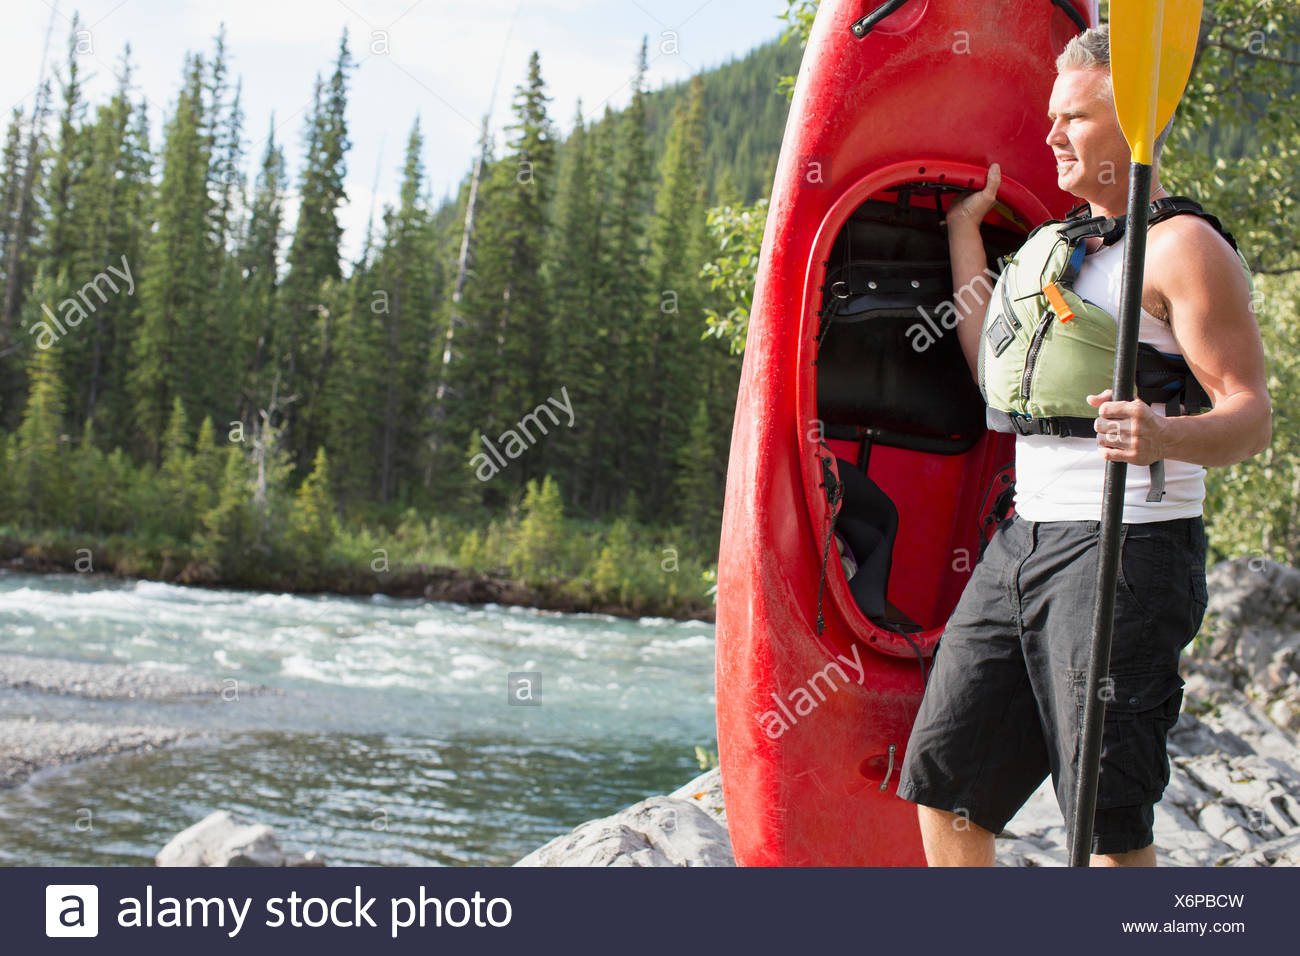 middle-aged man with kayak by waters edge - Stock Image